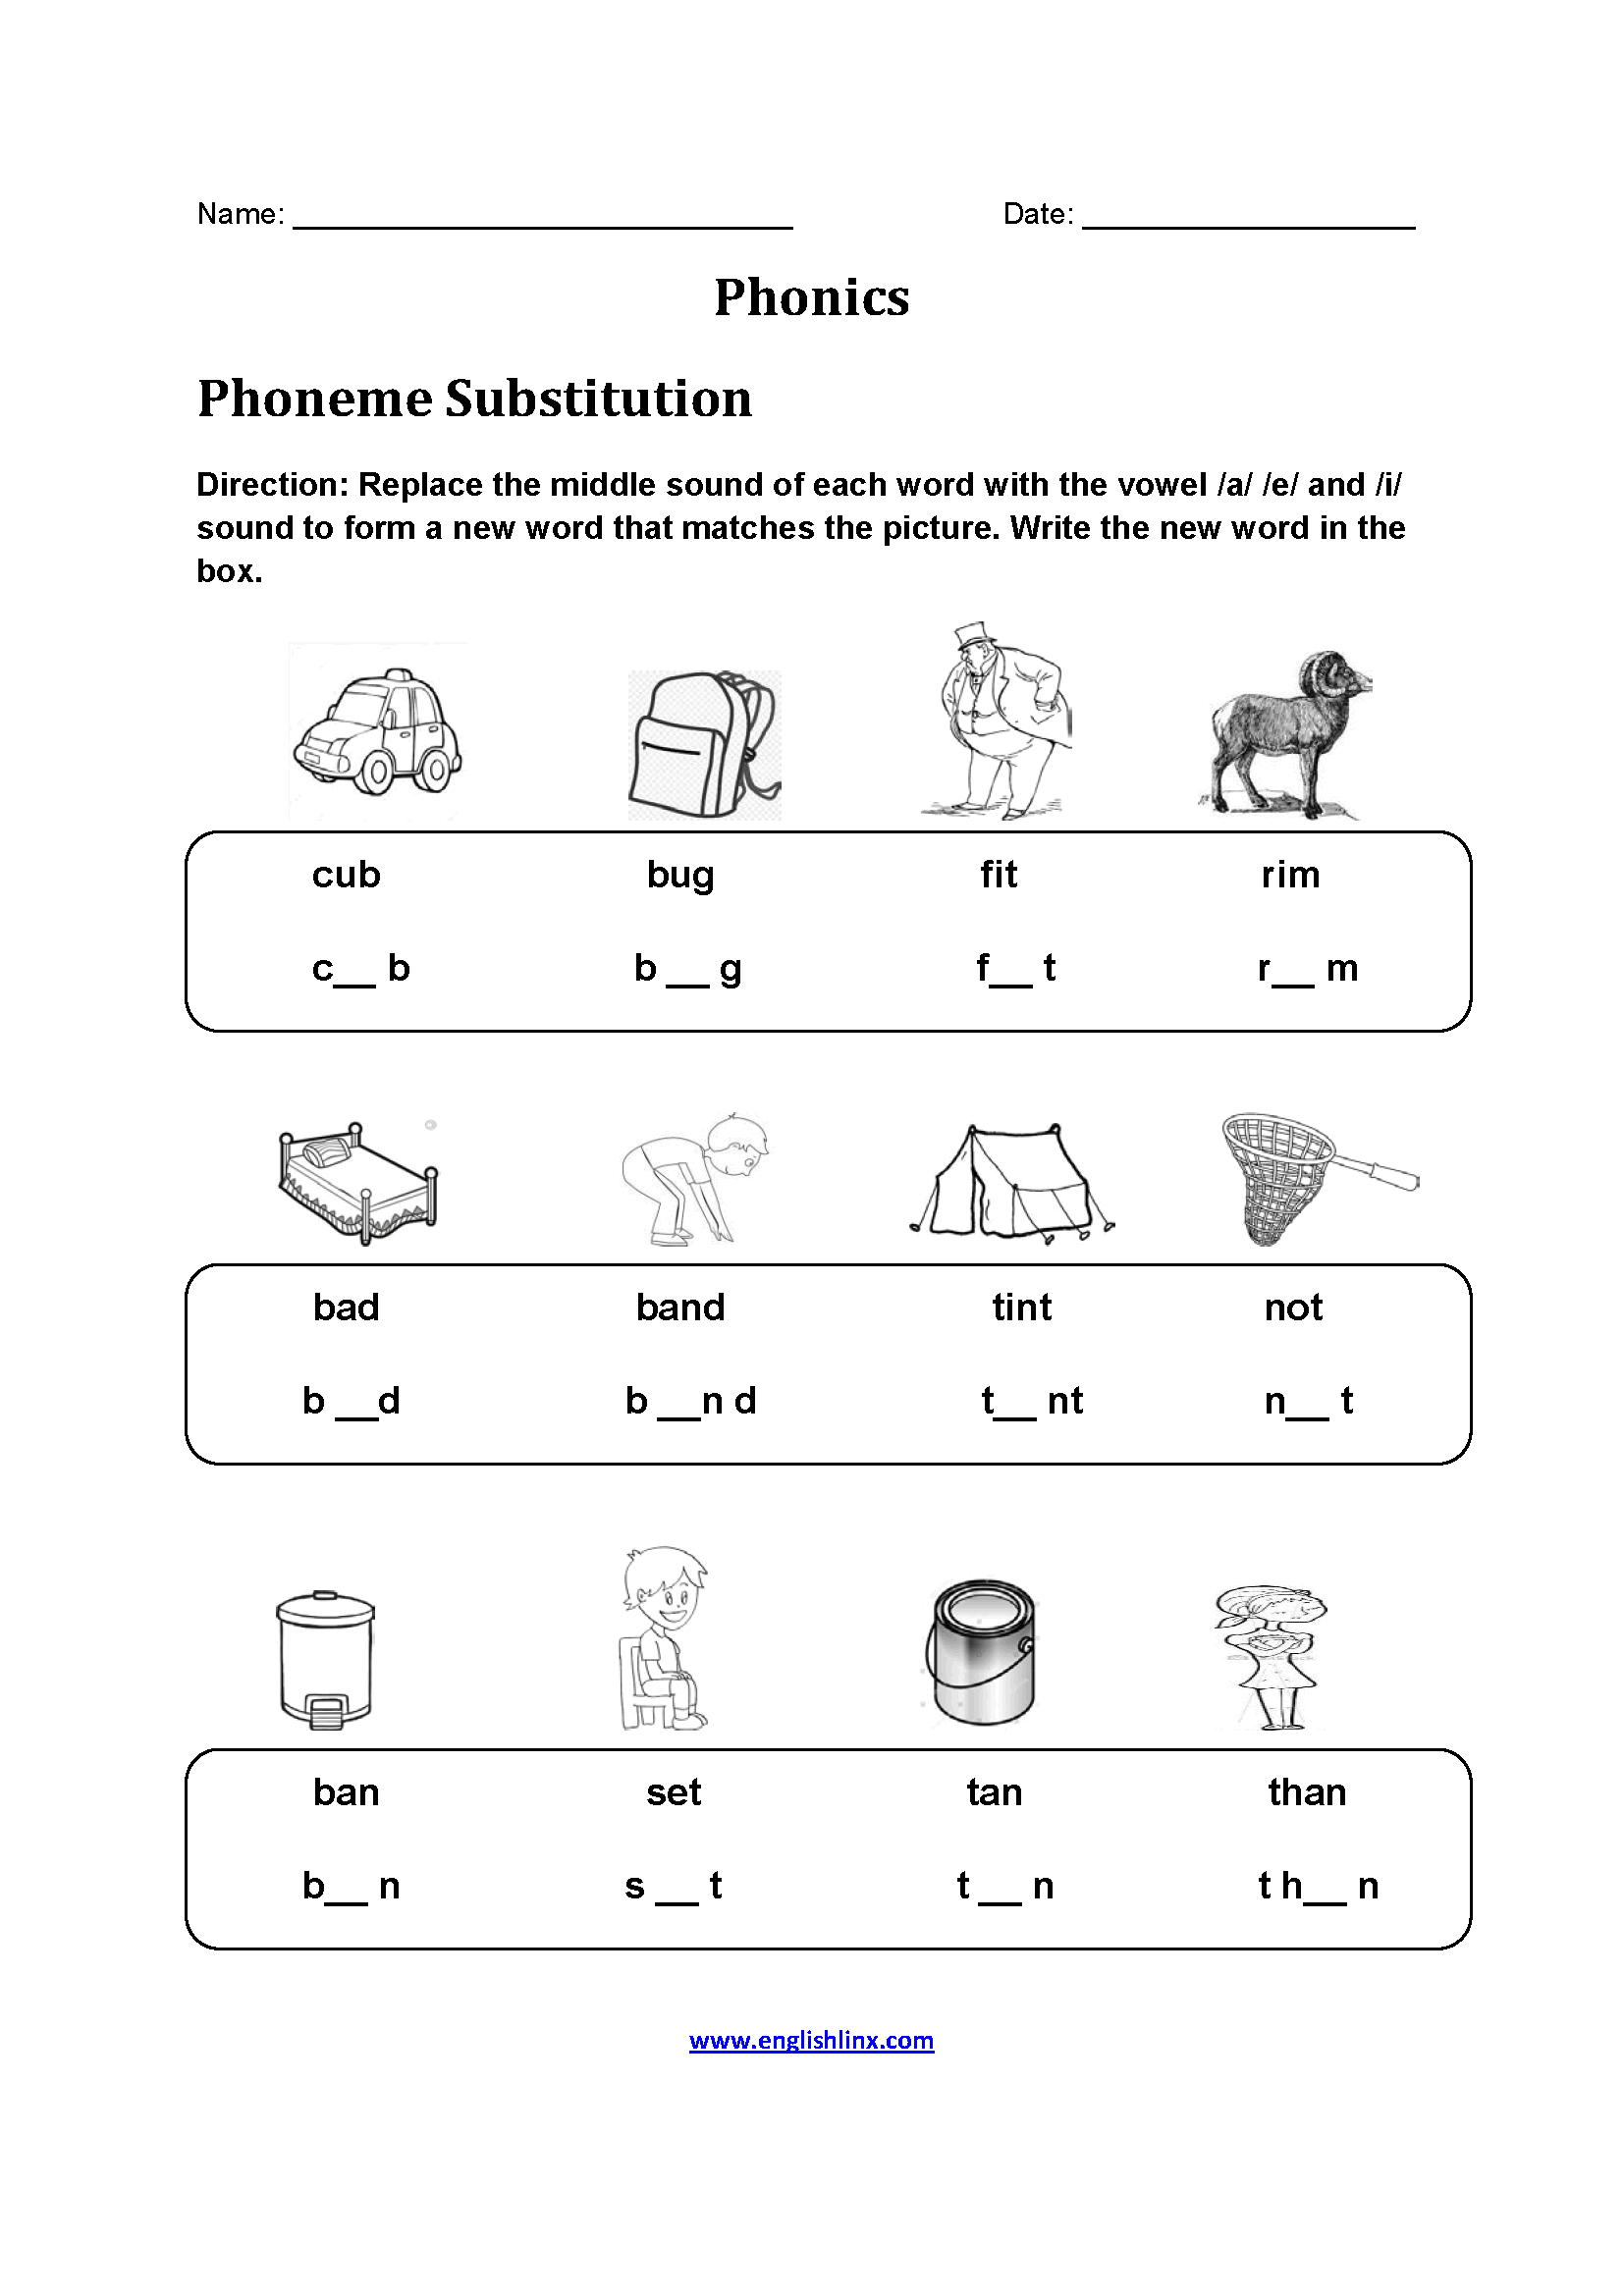 hight resolution of Phonics Worksheets For First Grade Printable   Printable Worksheets and  Activities for Teachers